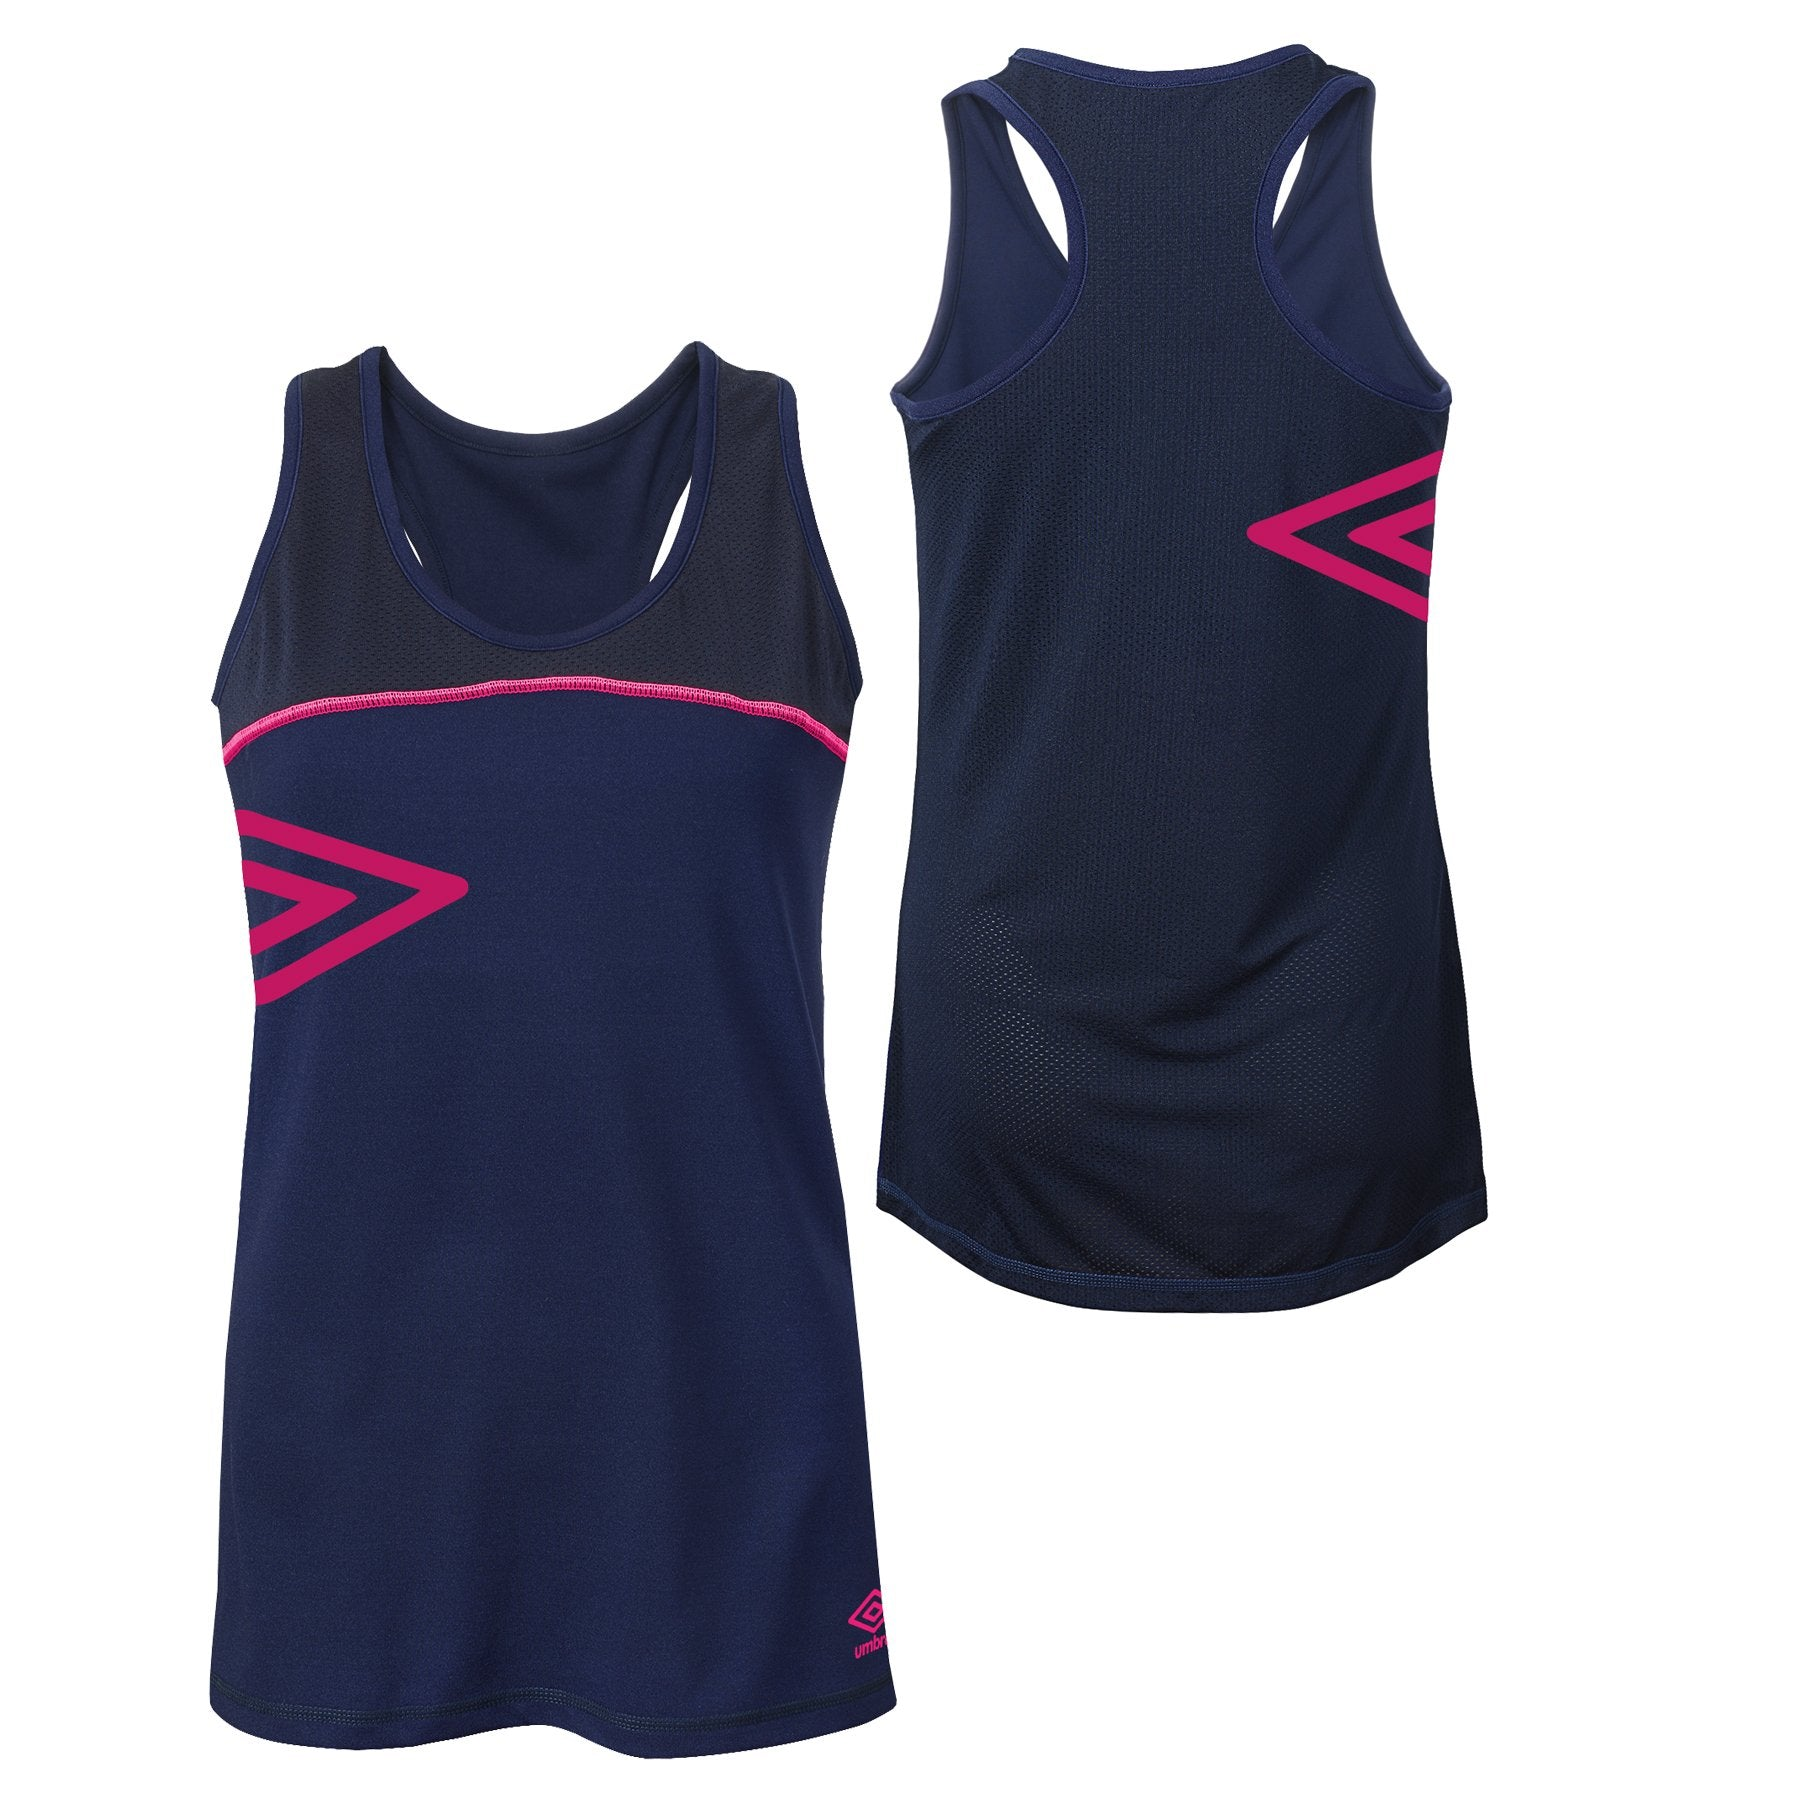 UX Women's Tank Top (Final Sale) - ITA Sports Shop